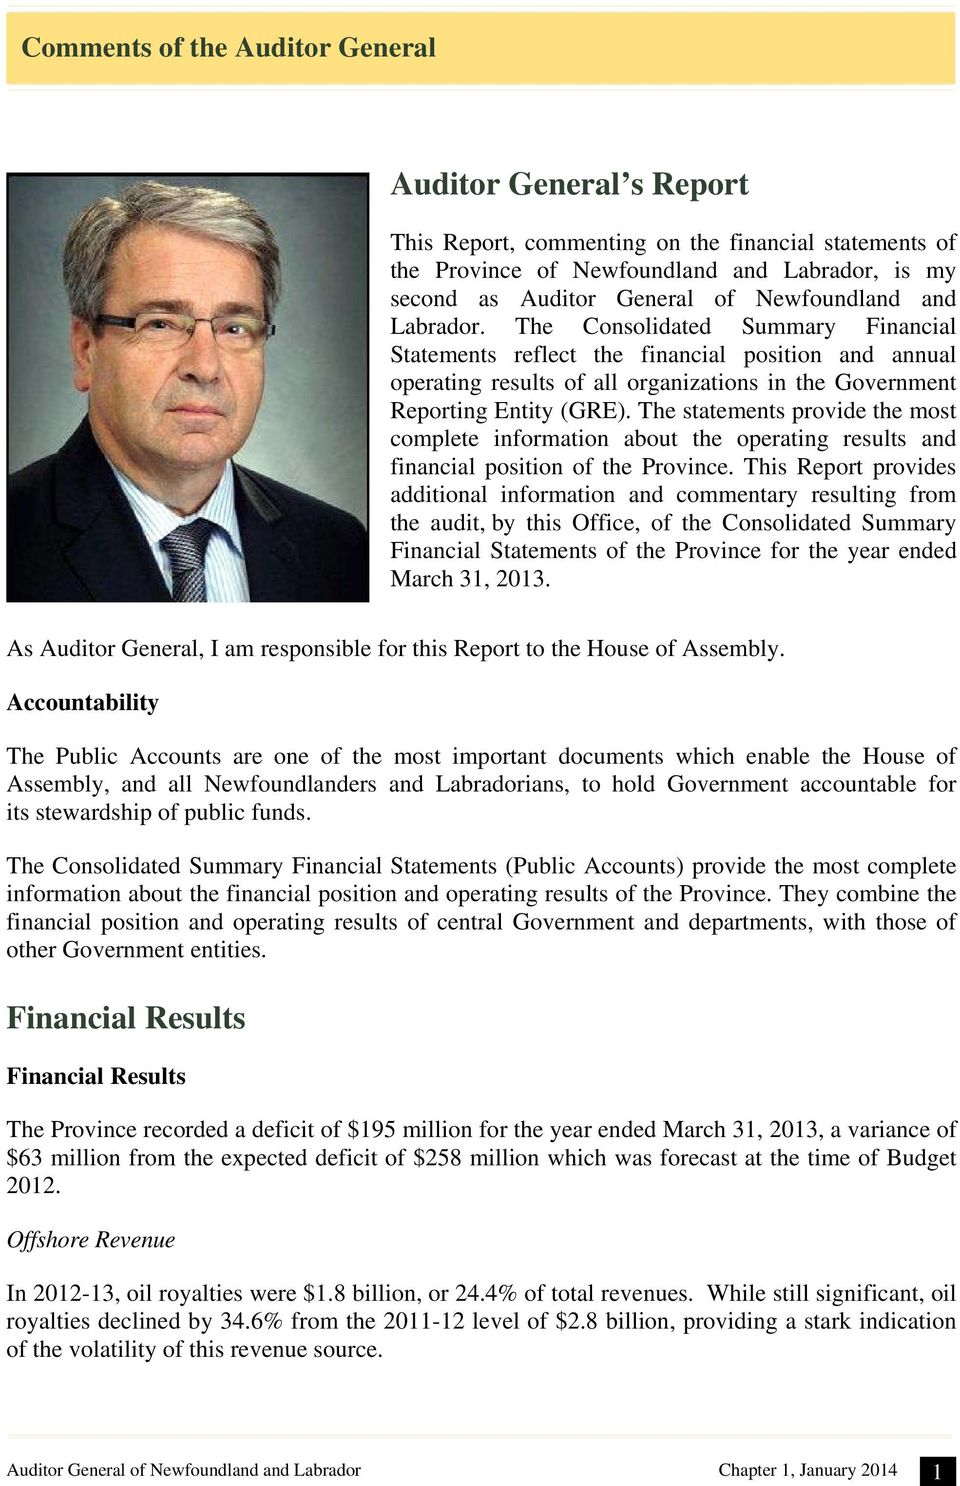 The statements provide the most complete information about the operating results and financial position of the Province.